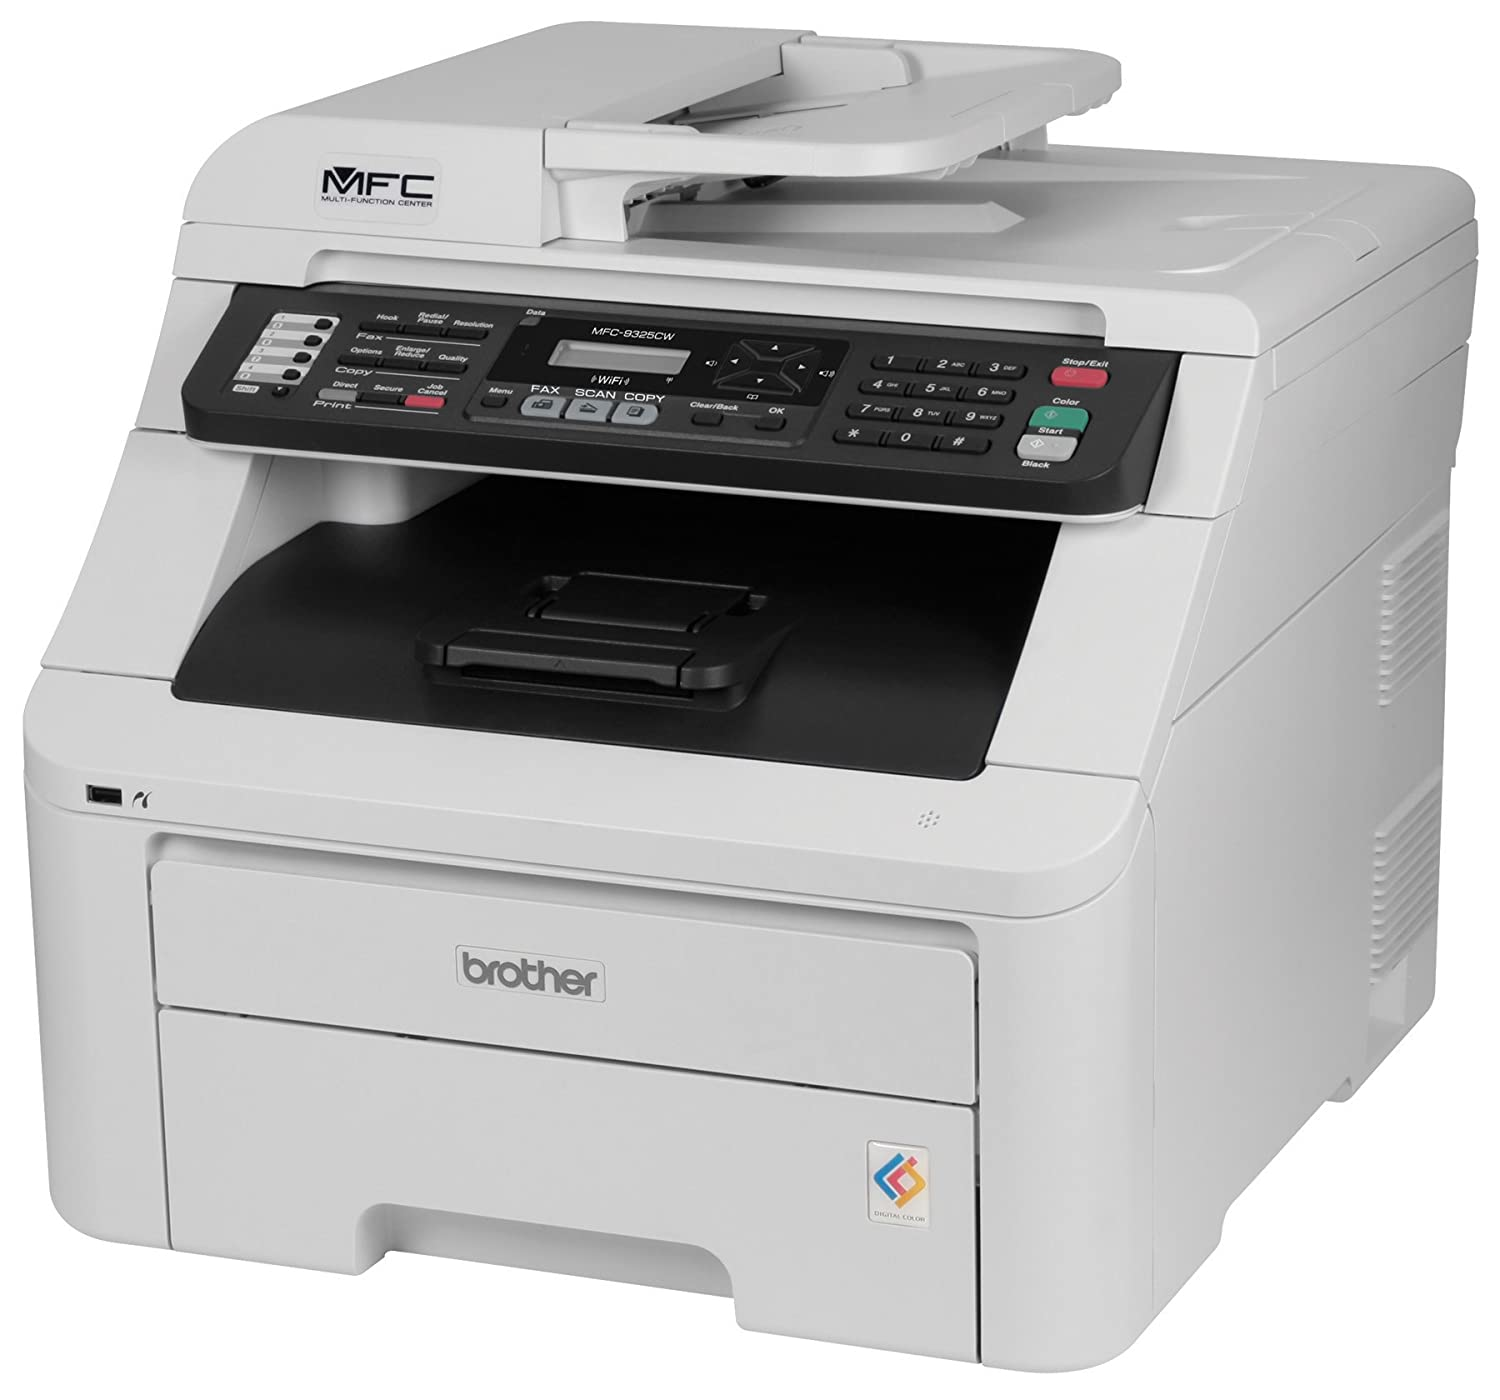 Amazon.com: Brother MFC9325CW Wireless Color Printer with Scanner, Copier &  Fax: Electronics